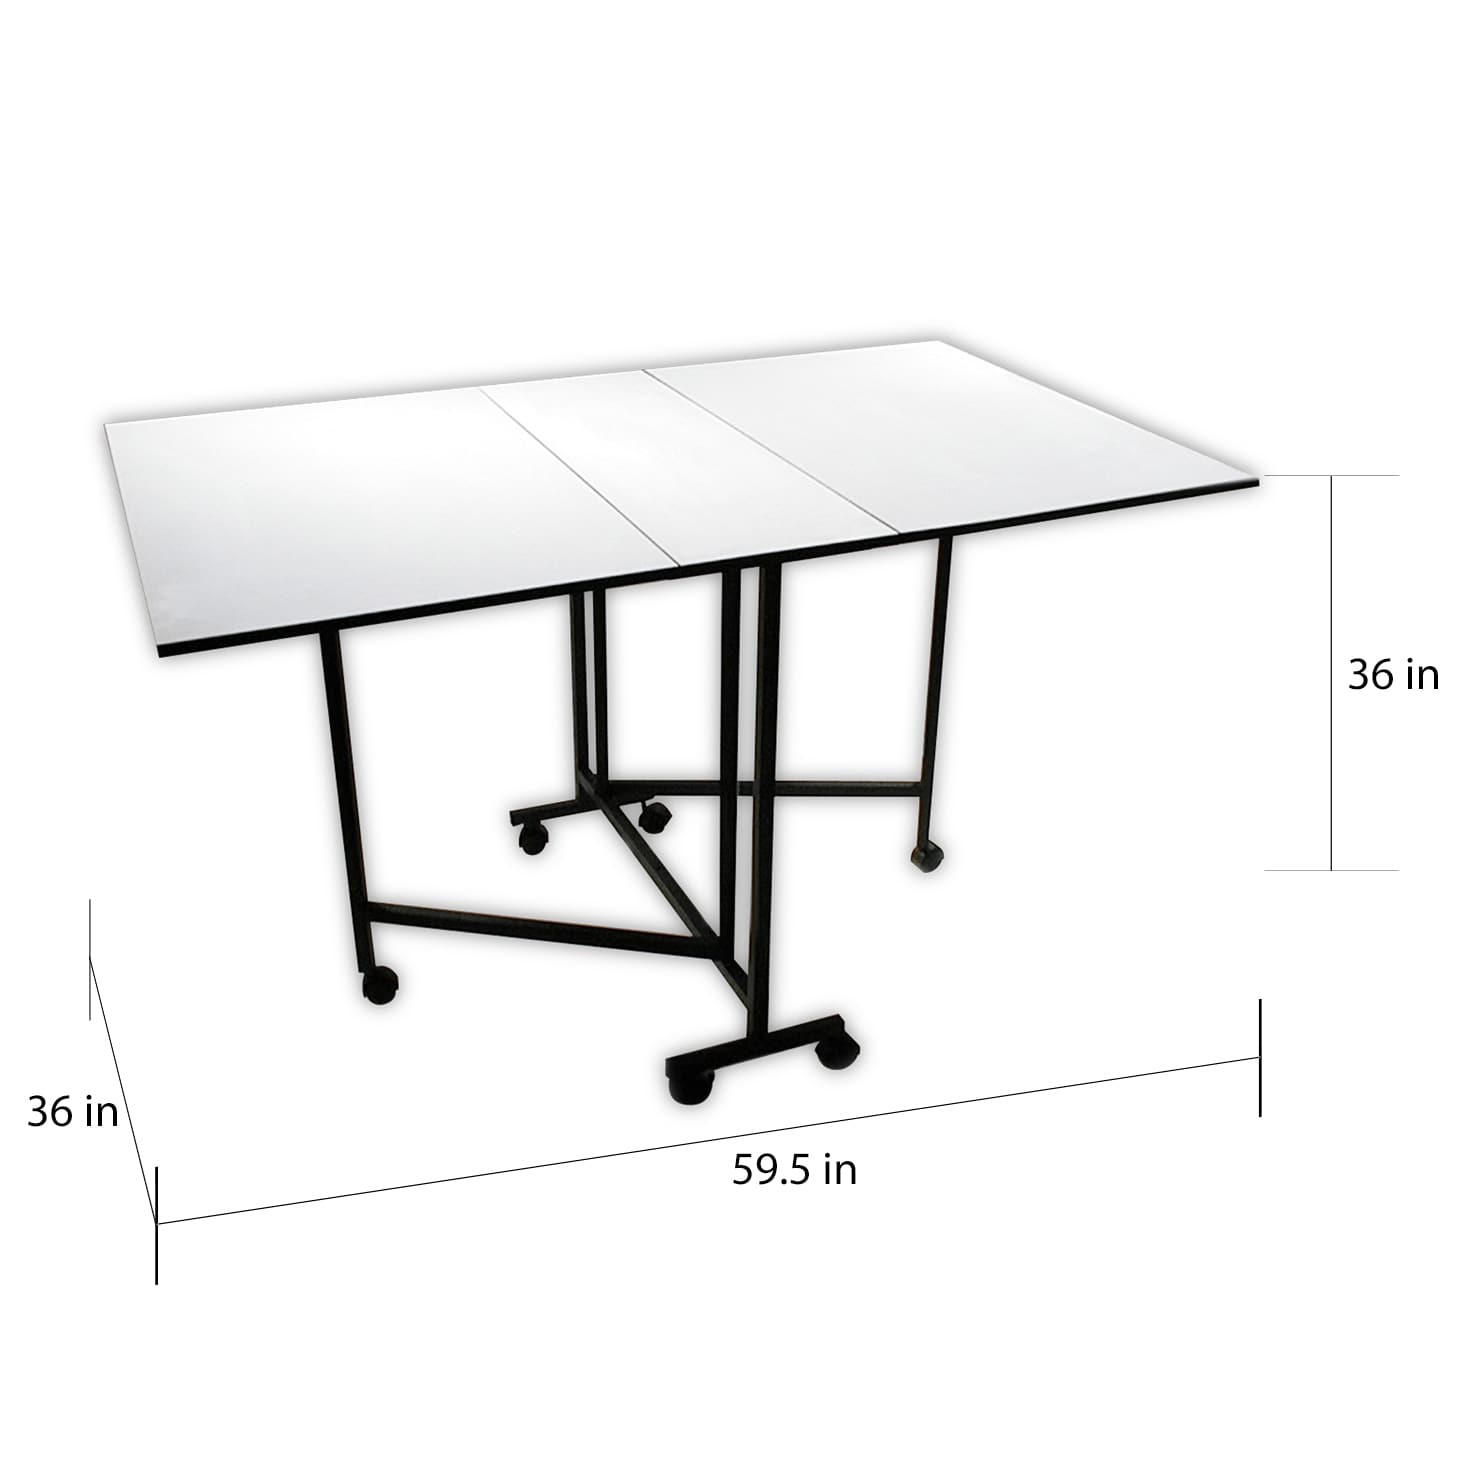 Hobby Tables Adjustable - Table Design Ideas